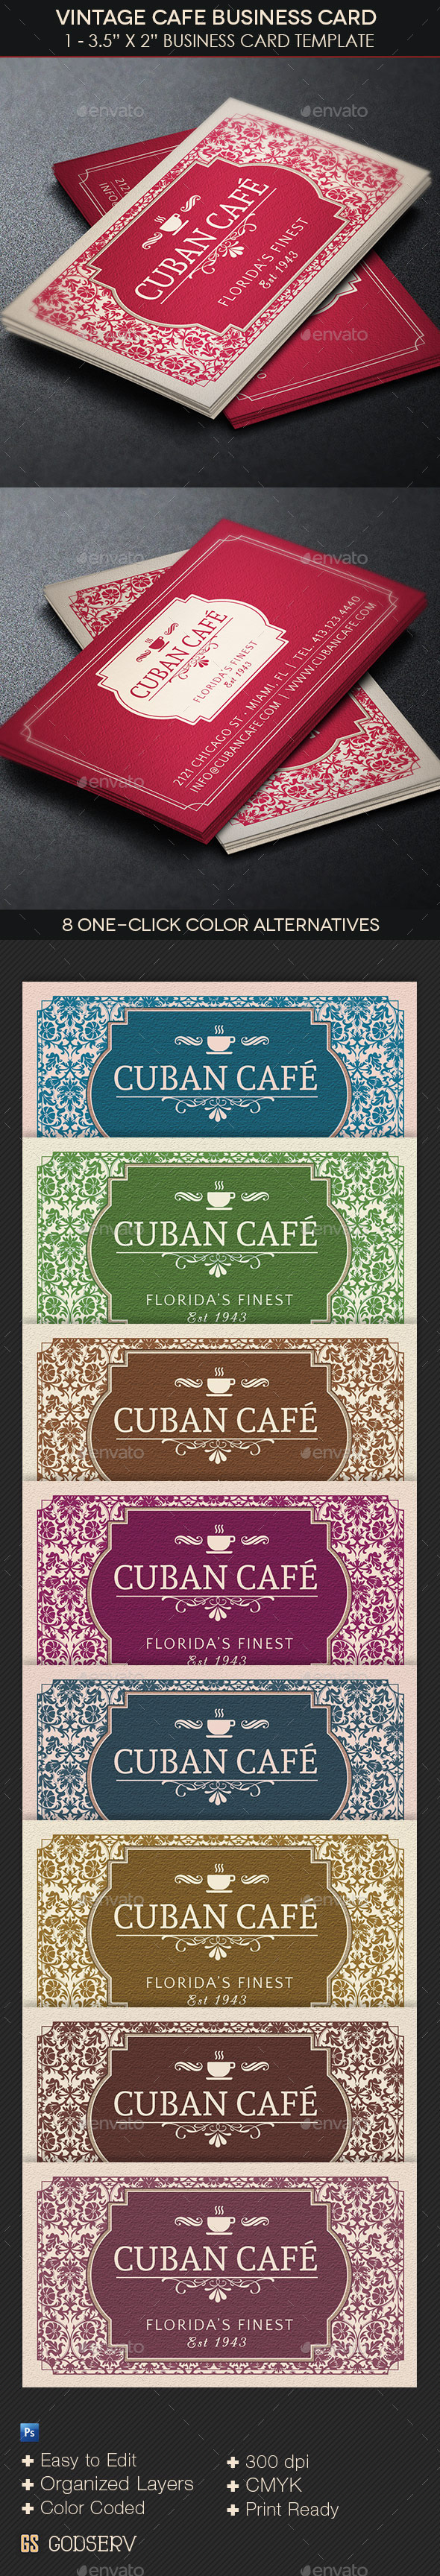 GraphicRiver Vintage Cafe Business Card Template 11069491